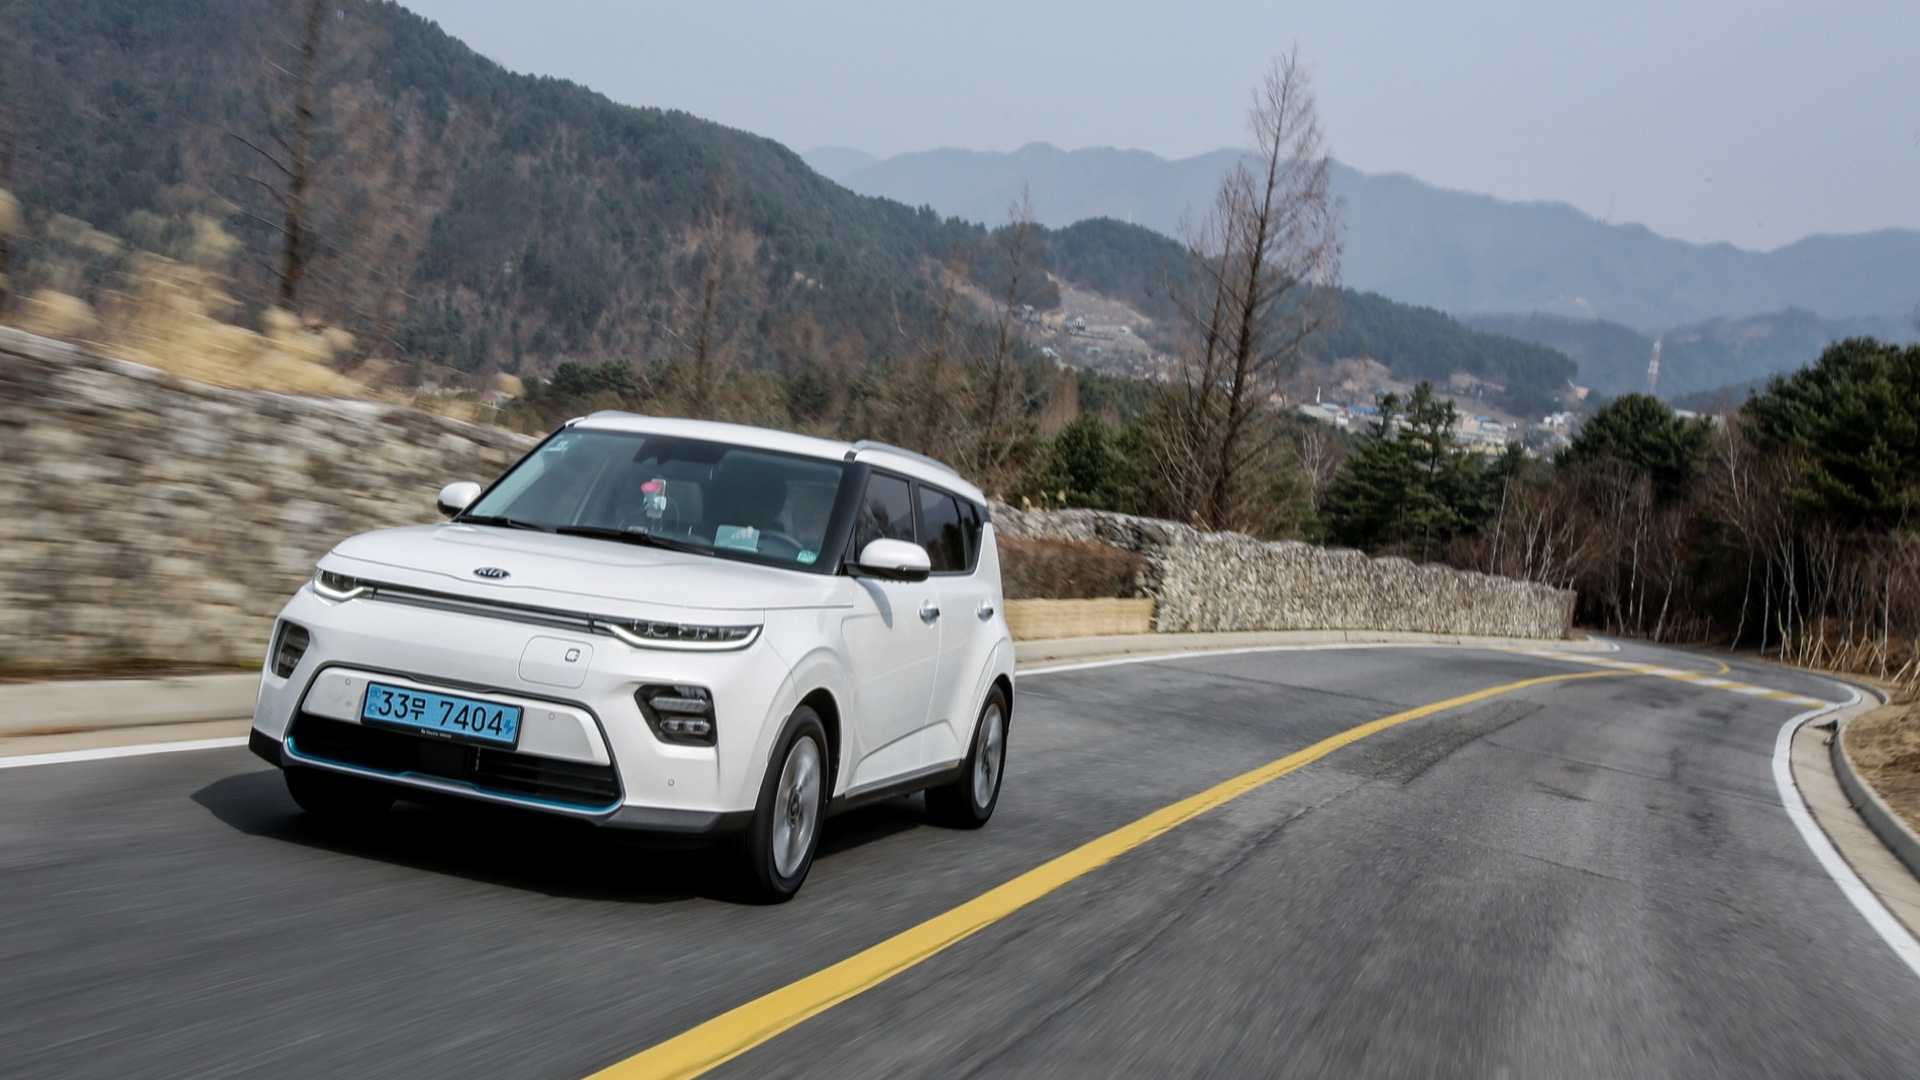 2020 Kia Soul Full Review >> 2020 Kia Soul Ev First Drive Review 243 Electric Miles In